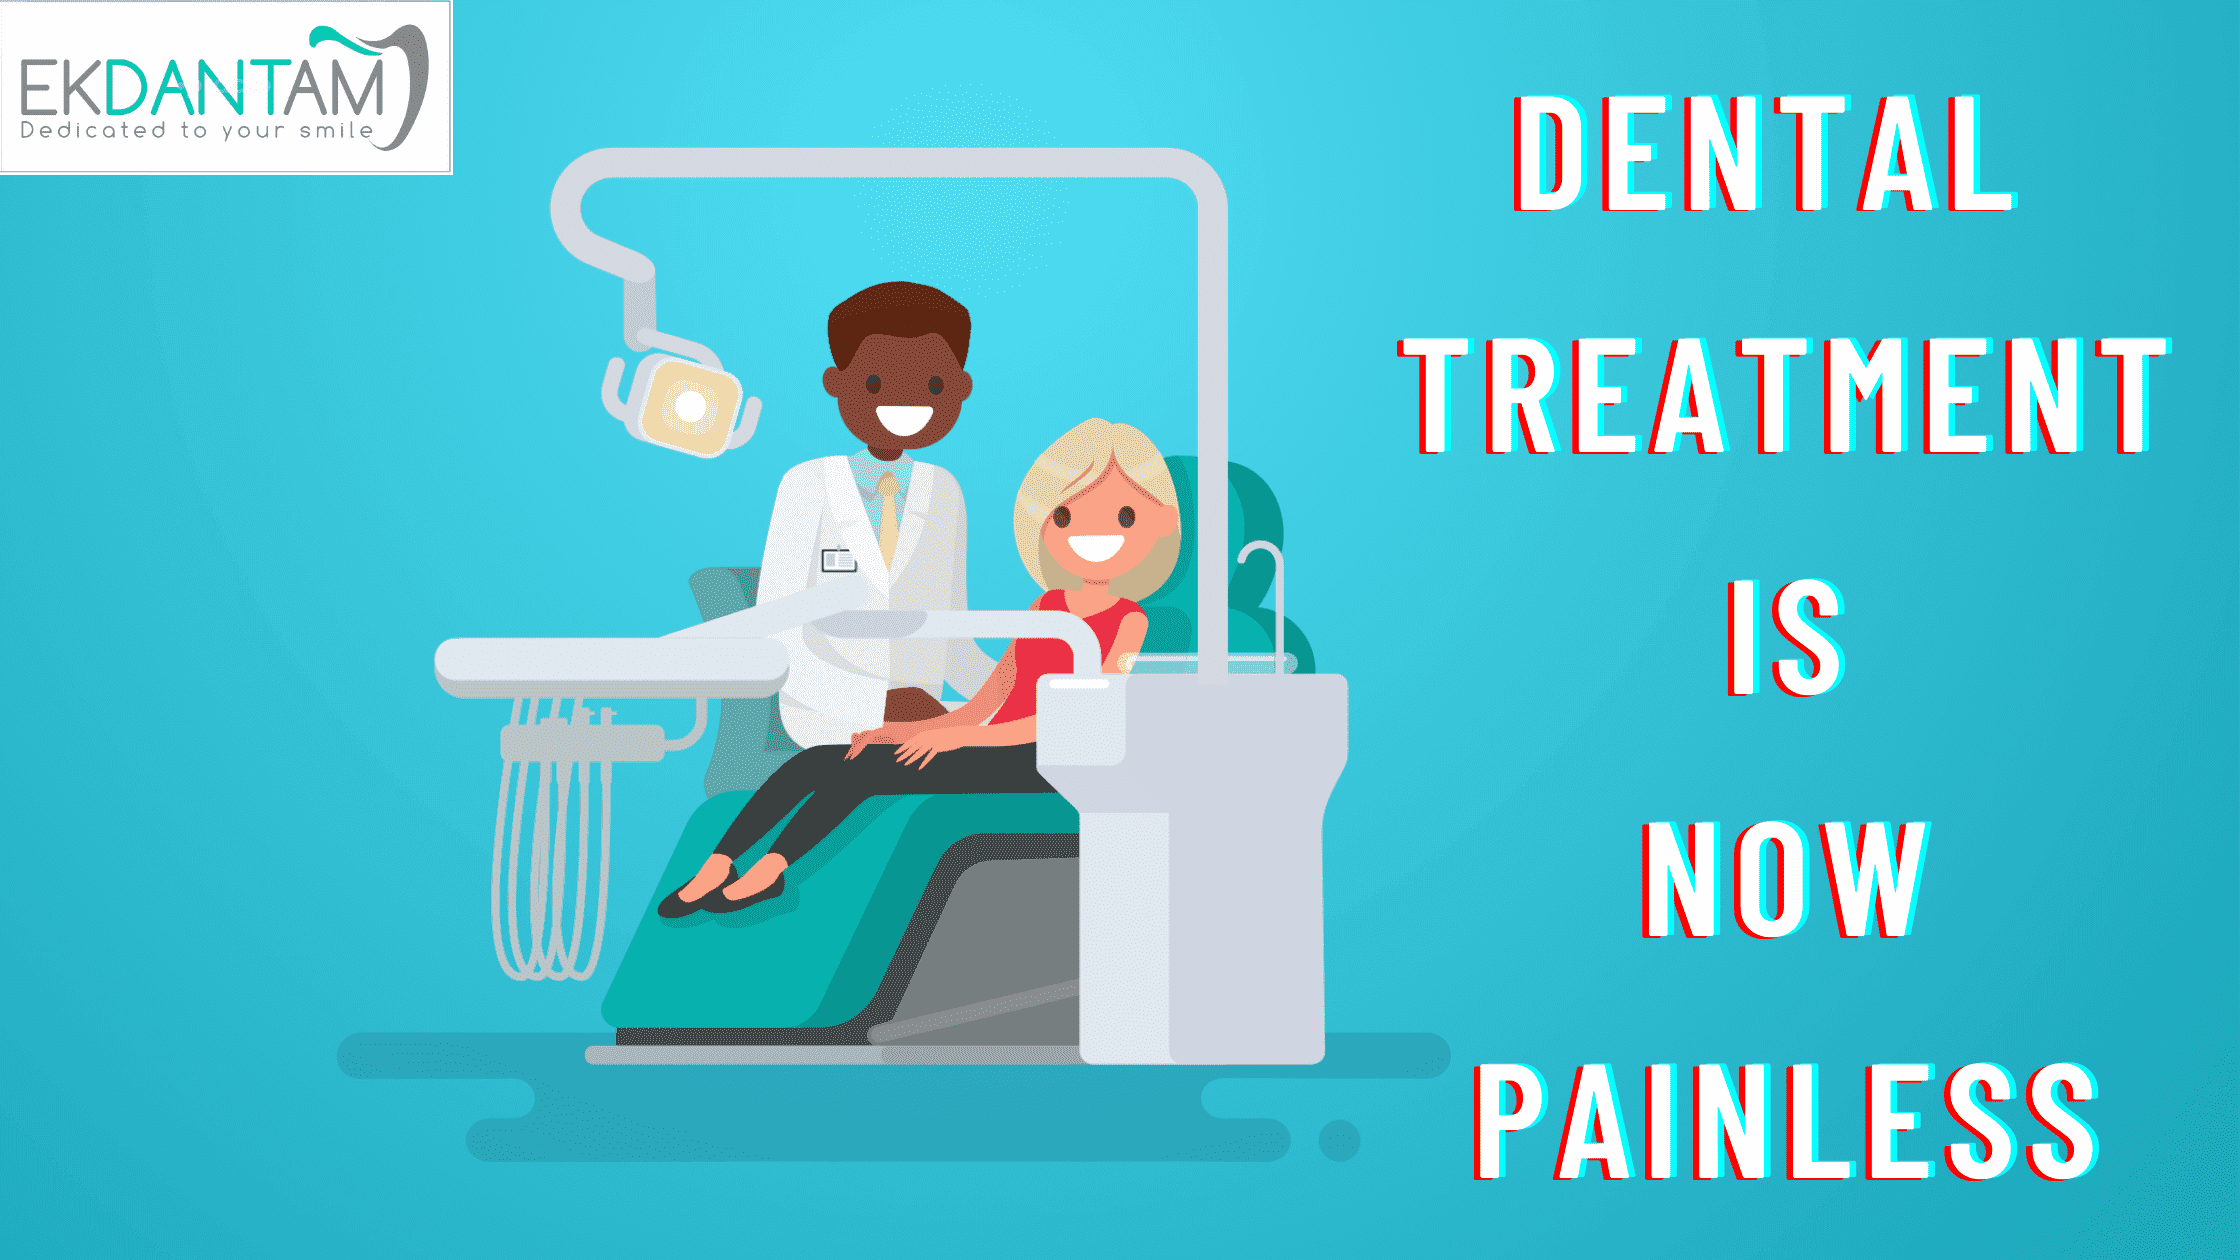 Dental Treatment is Now Painless